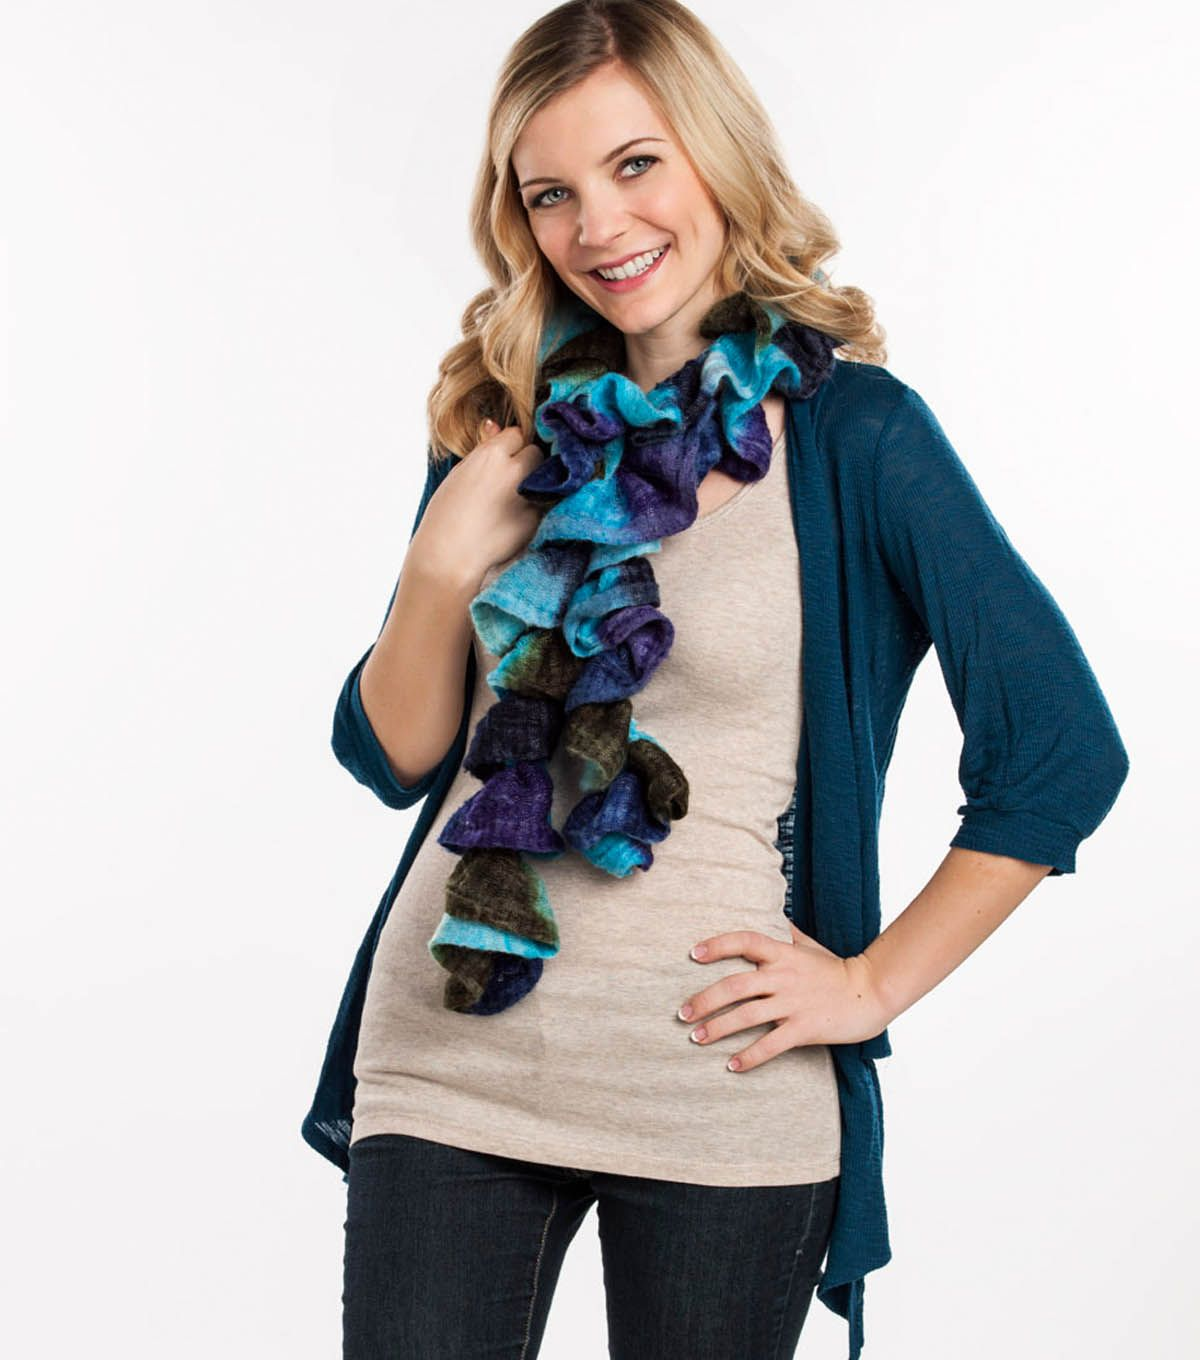 Starbella Strata Crochet Scarf | In Stitches! | Pinterest